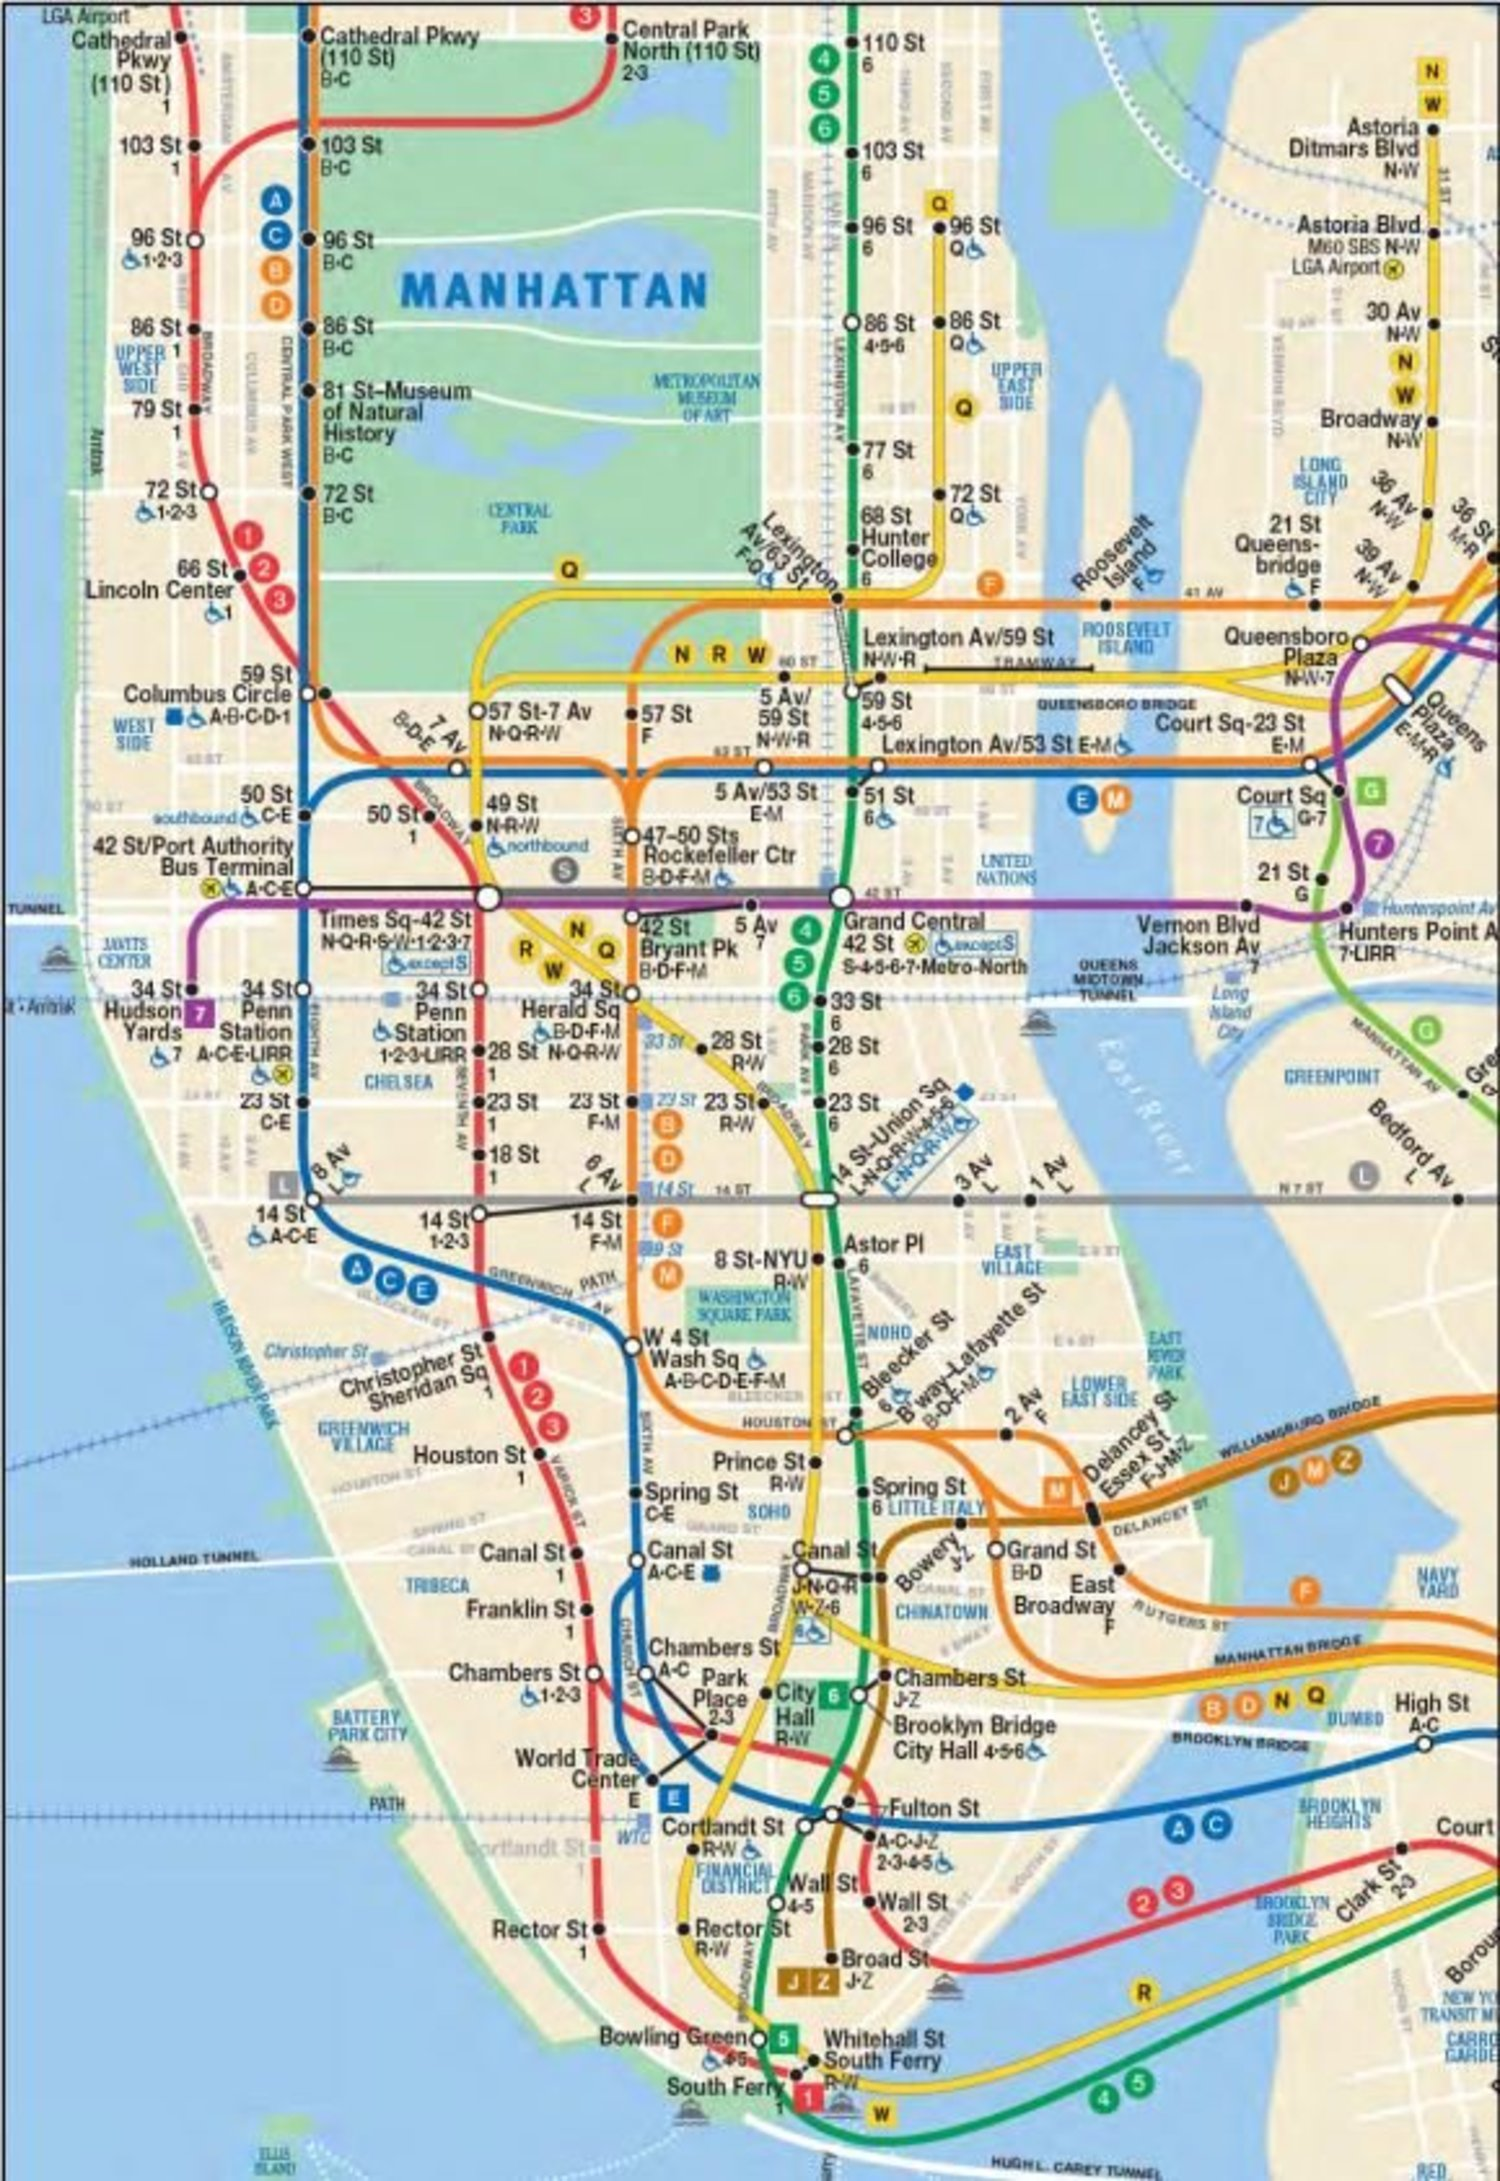 Ny Subway Map 7 Train.Map Shows Subway Map Updated For 2nd Ave Subway And Restored W Train